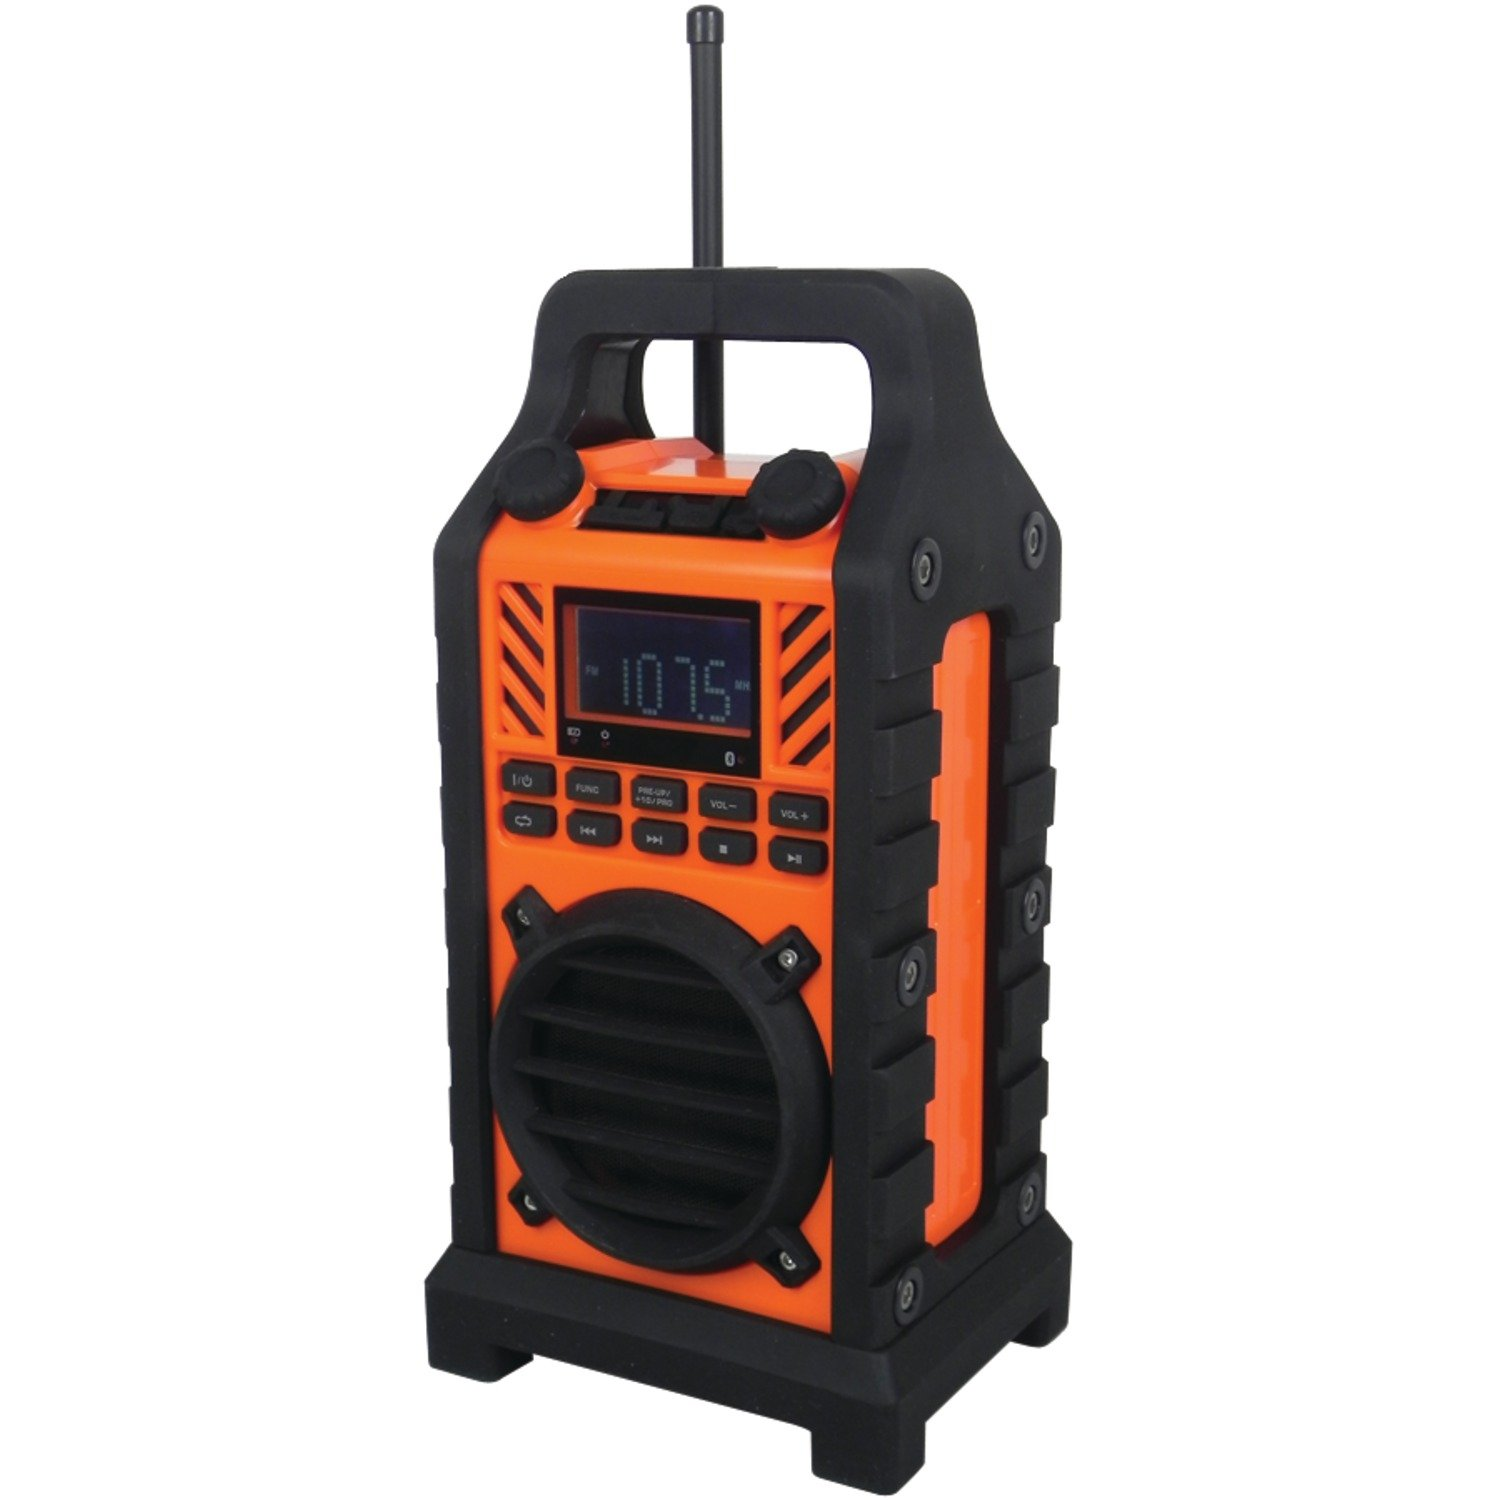 Sylvania SP303-Orange Heavy Duty Rugged Bluetooth Portable Speaker with FM Radio, USB/SD Reader and Charging, Orange